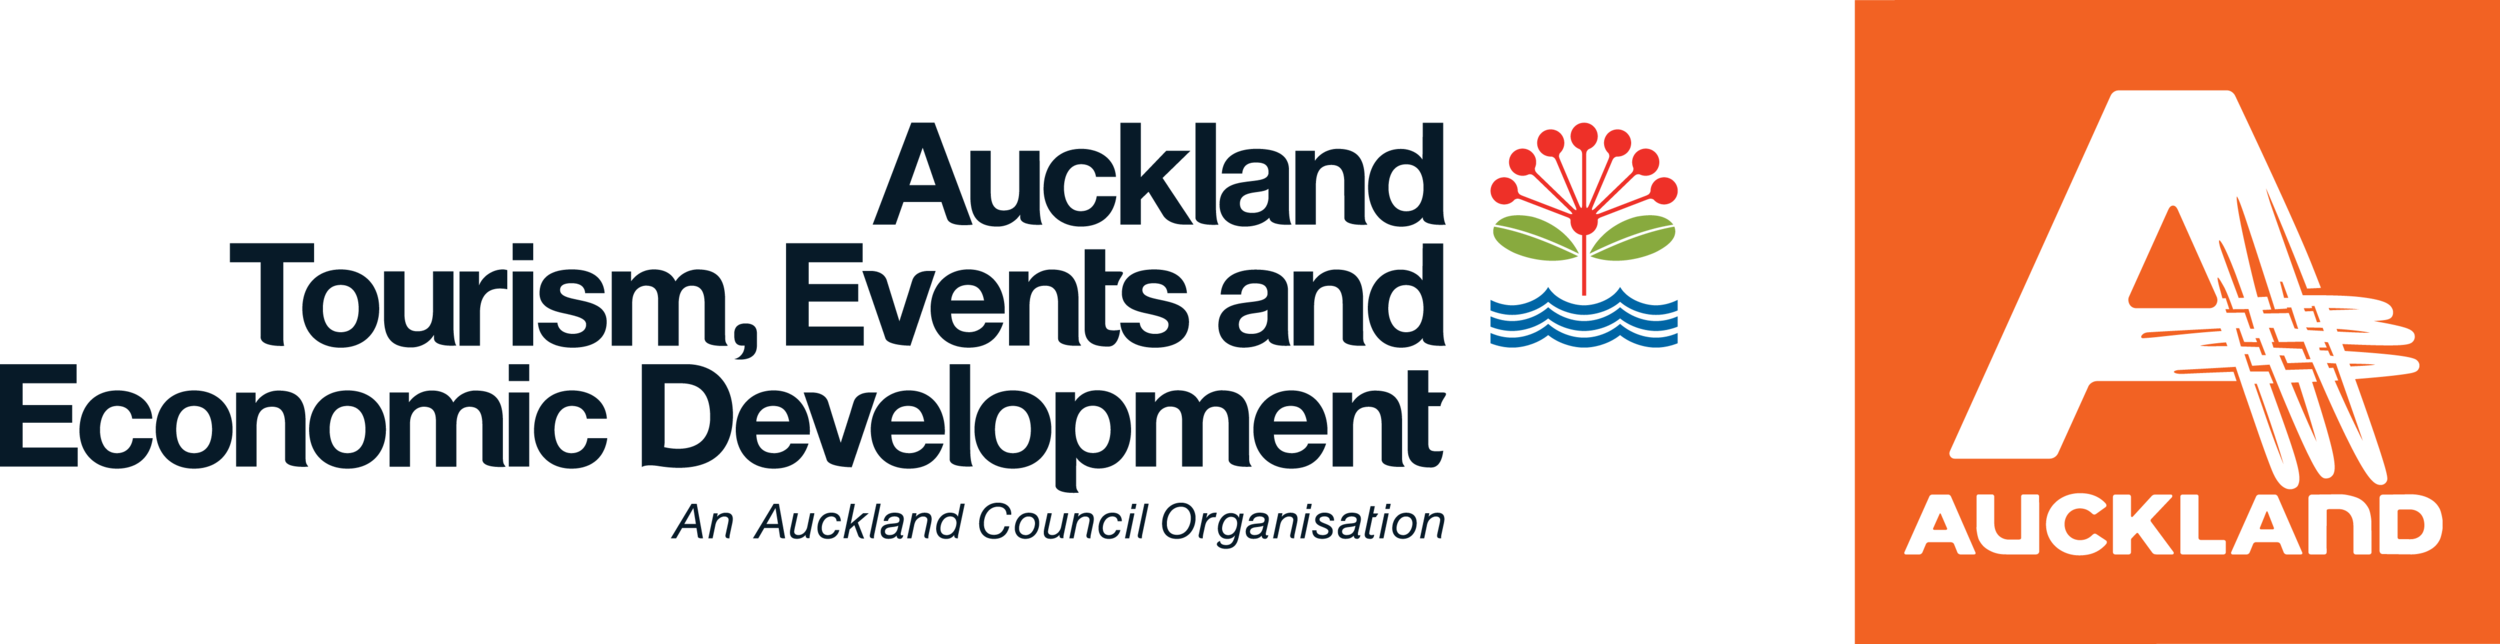 ATEEDAuckland_Primary_RGB.png